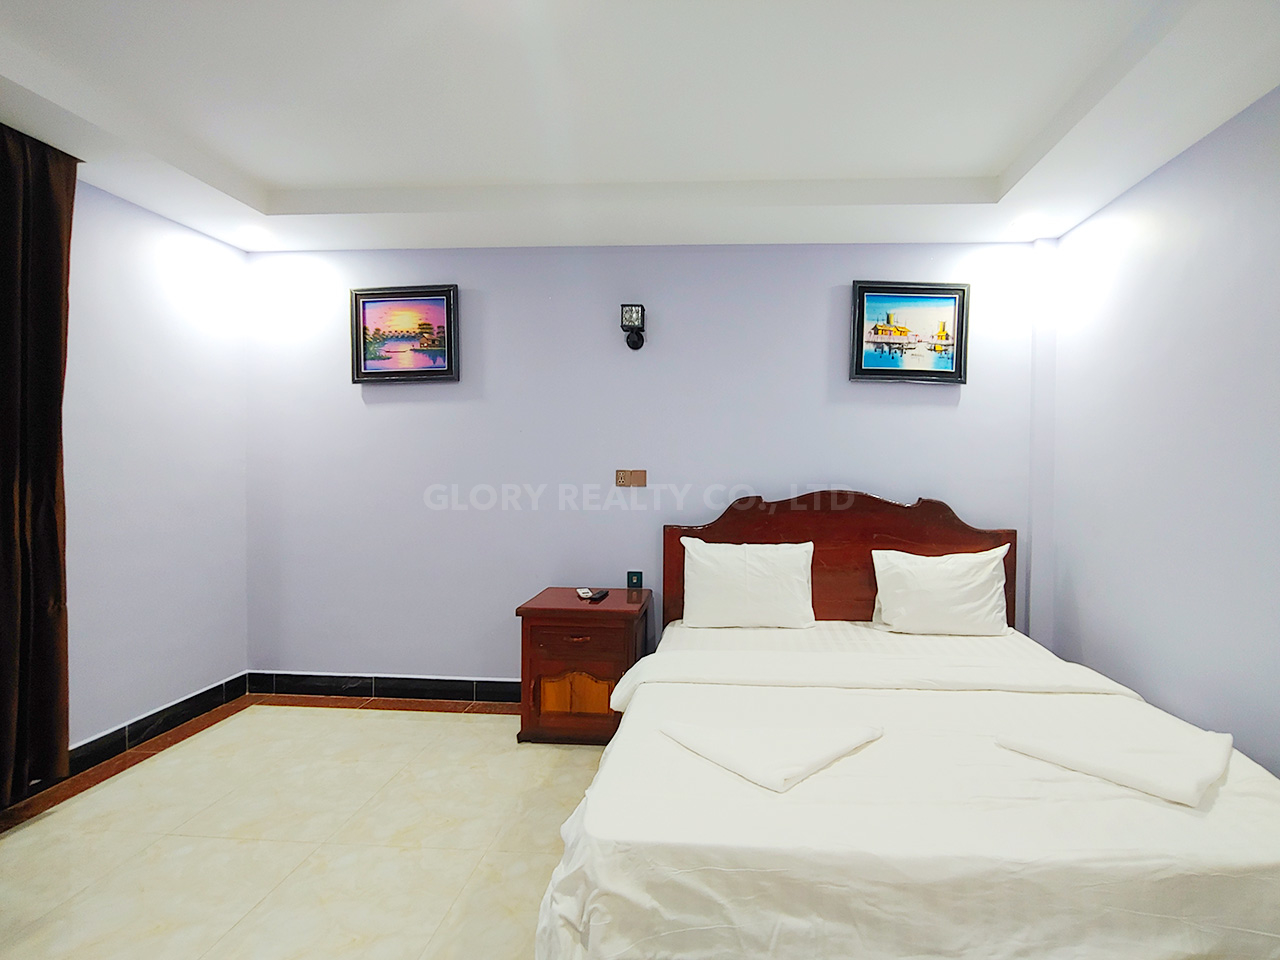 60 rooms hotel building for rent in Phnom Penh Thmei area